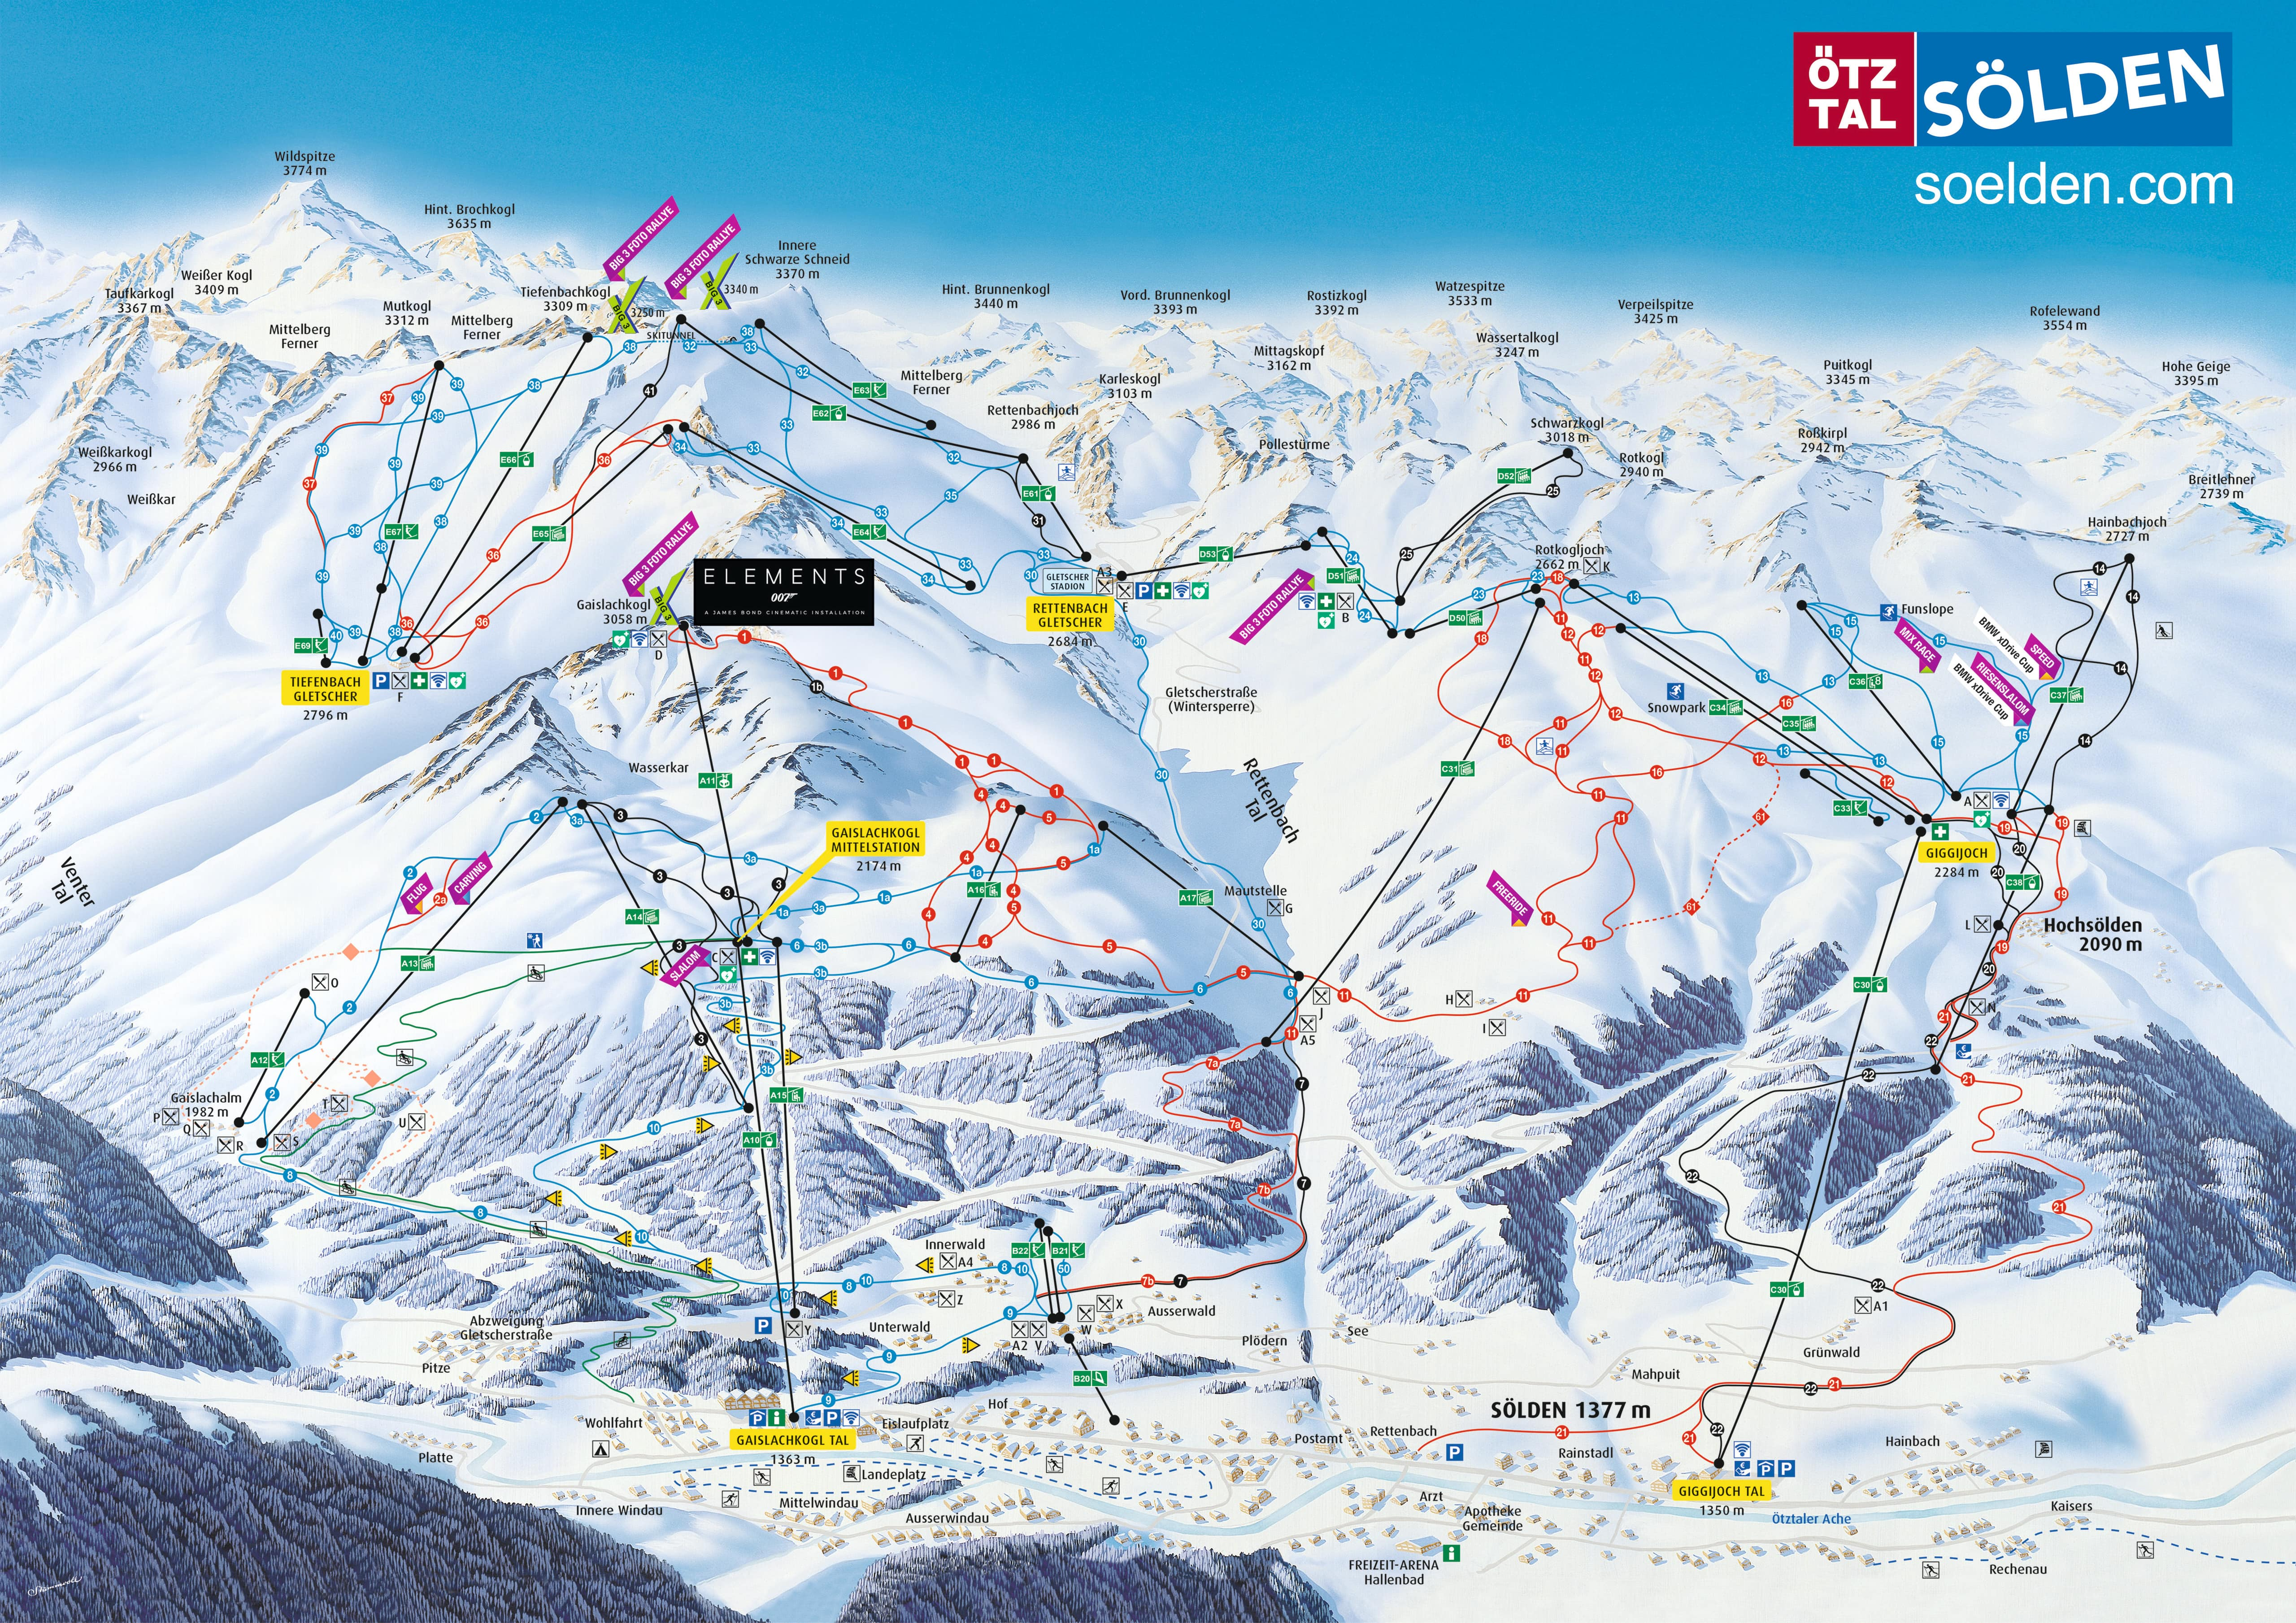 Sölden Piste / Trail Map